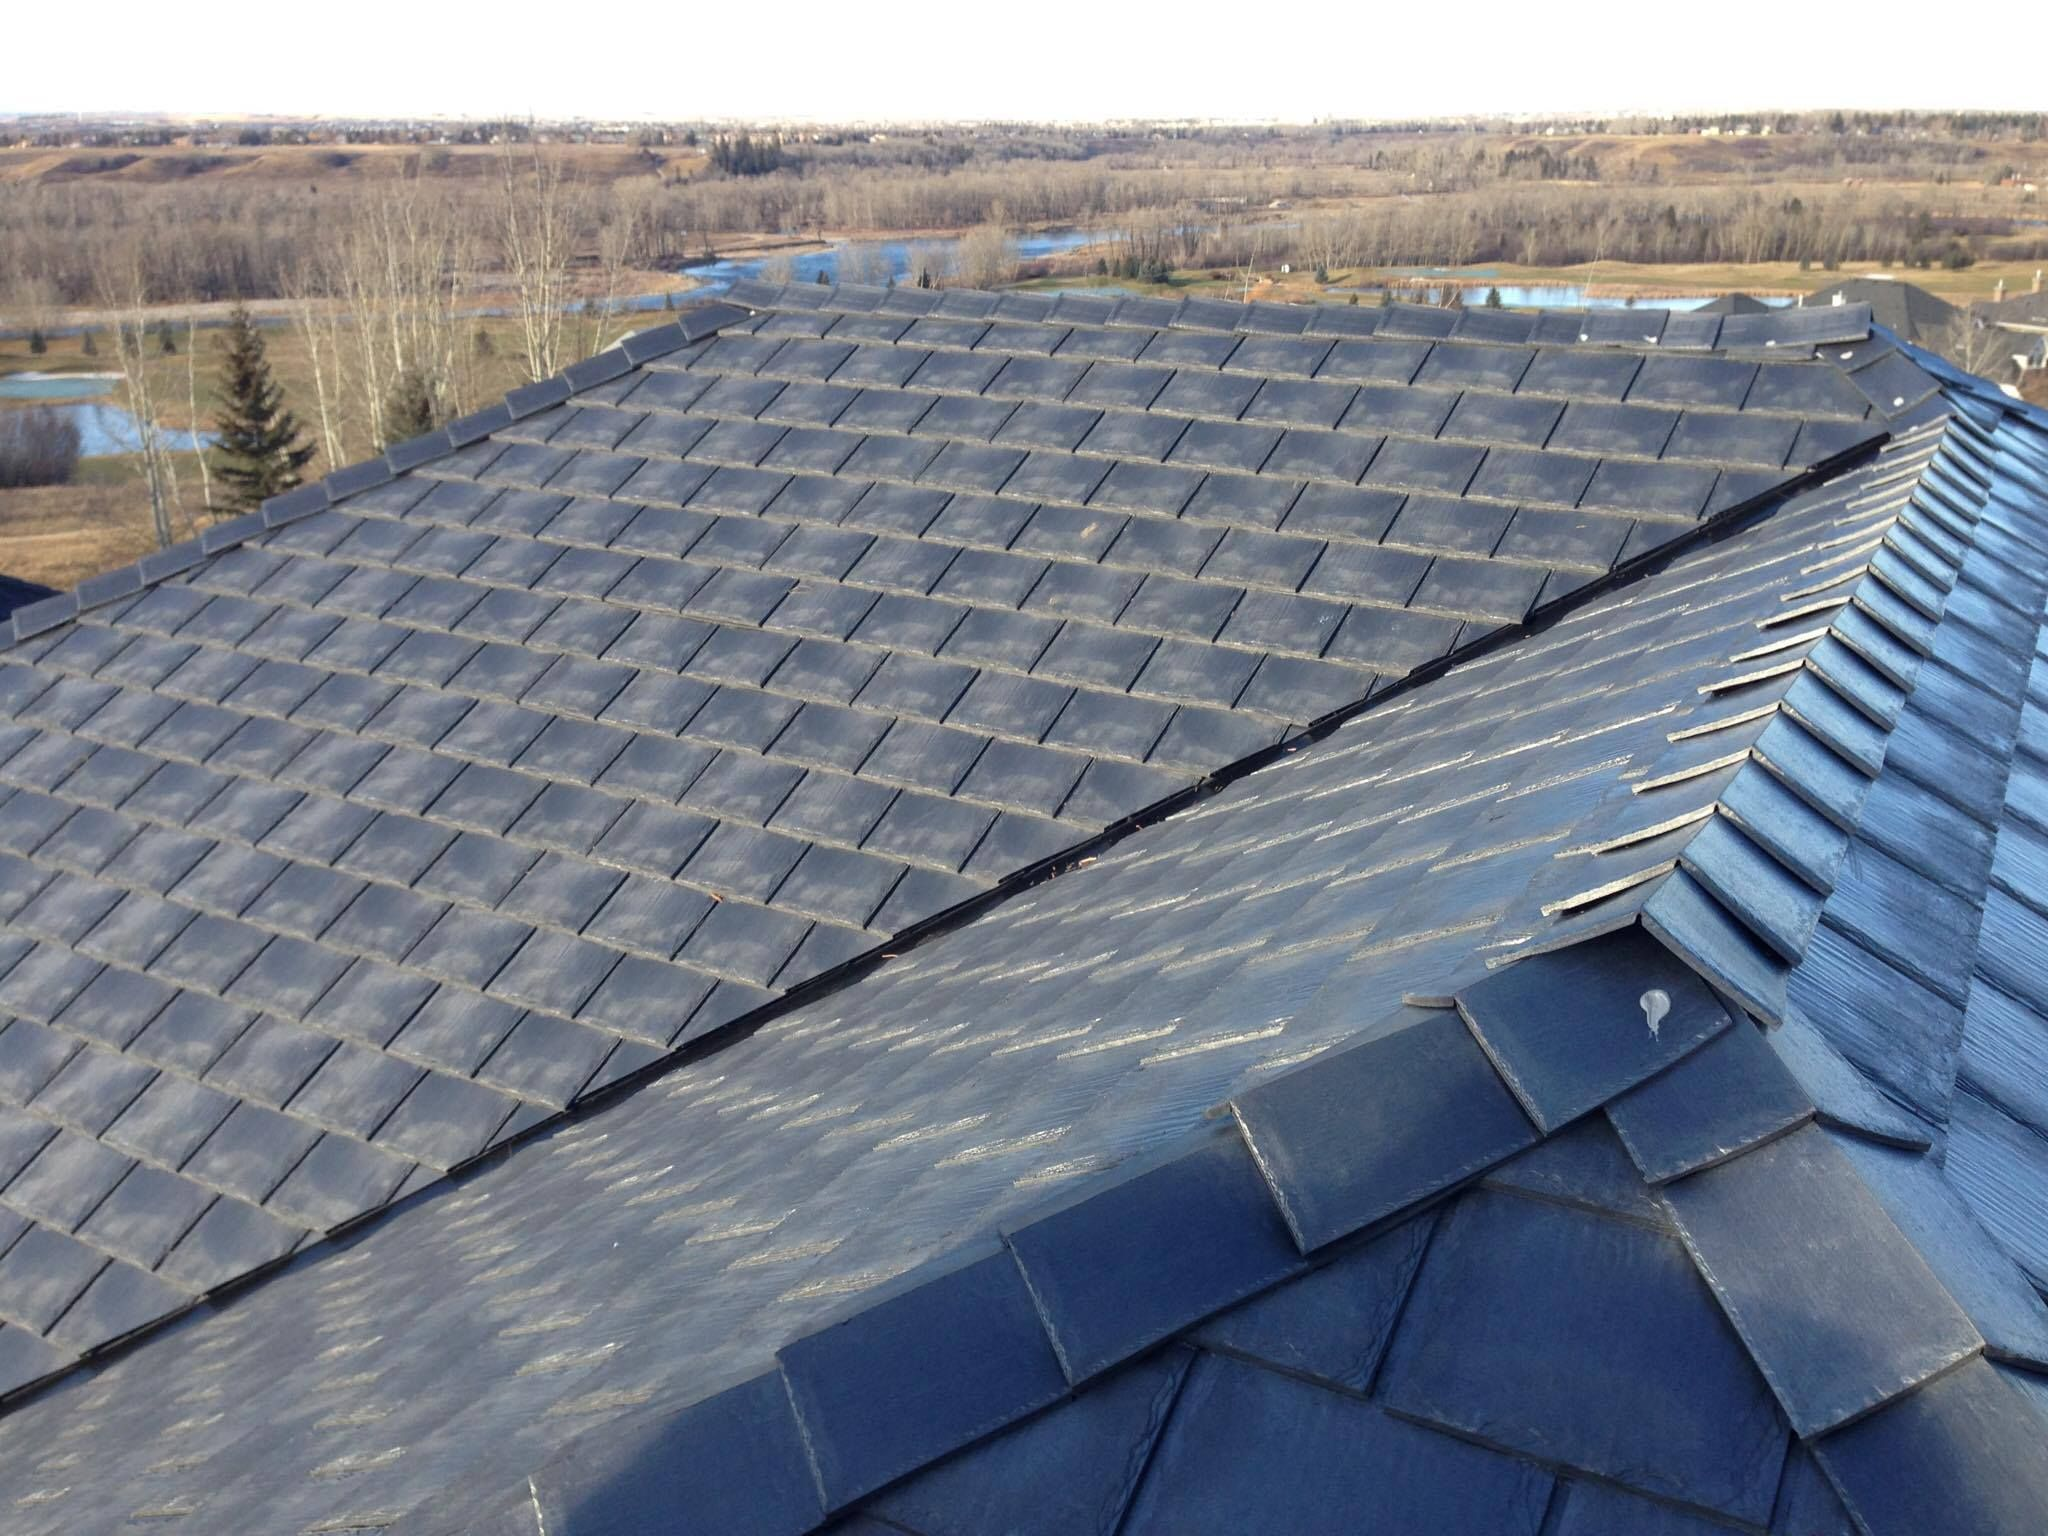 Heritage Slate In Sterling Grey Home Roof Heritage Slate Grey Roofing Roofingmaterial Rubber Lifetimewarranty Authenti With Images Rooftop Garden Roofing Rooftop